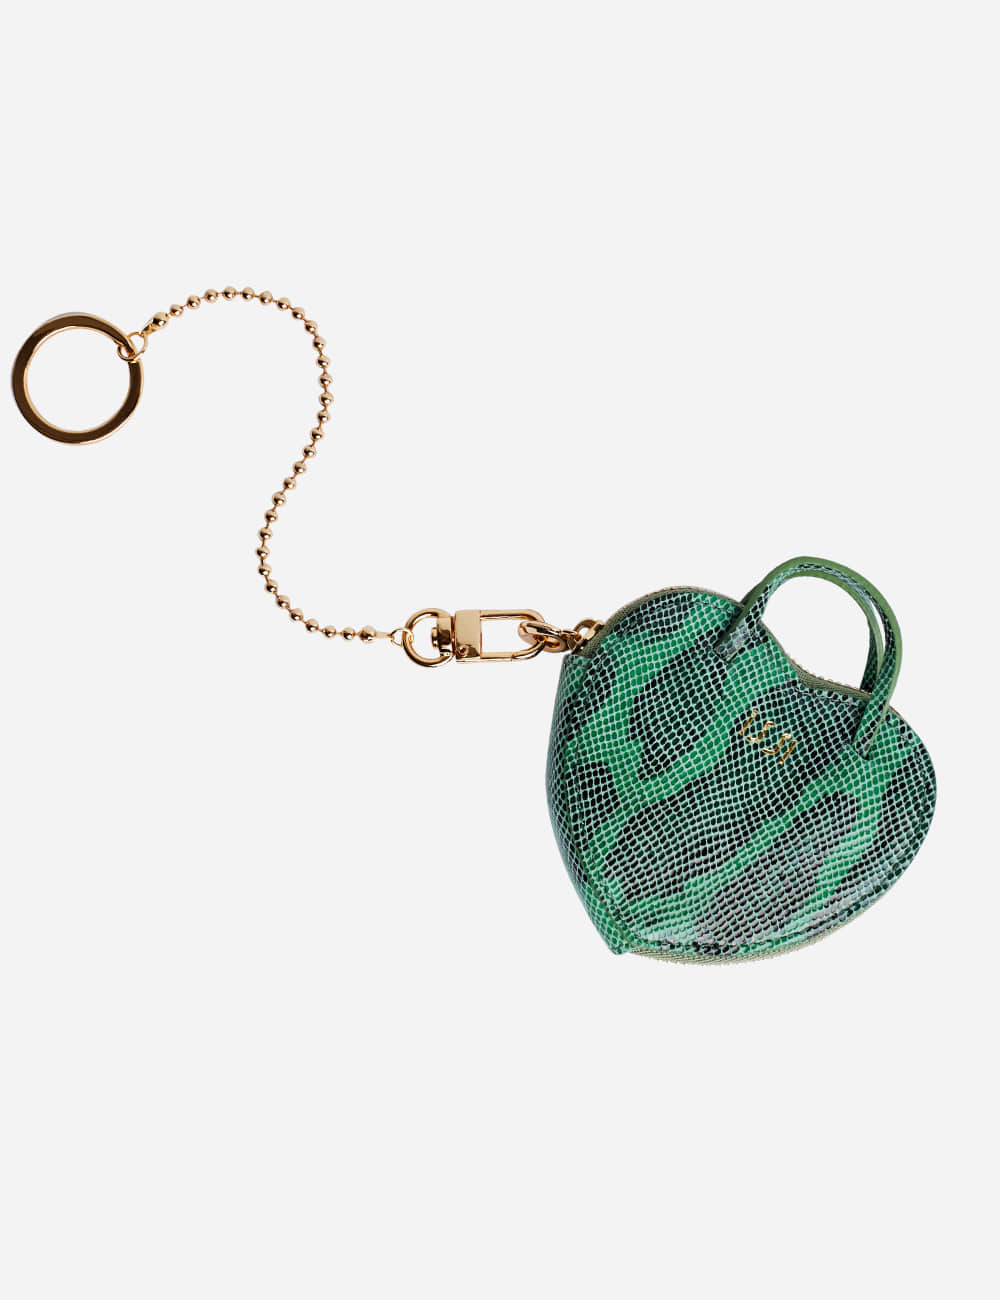 Amour Keyring, Green